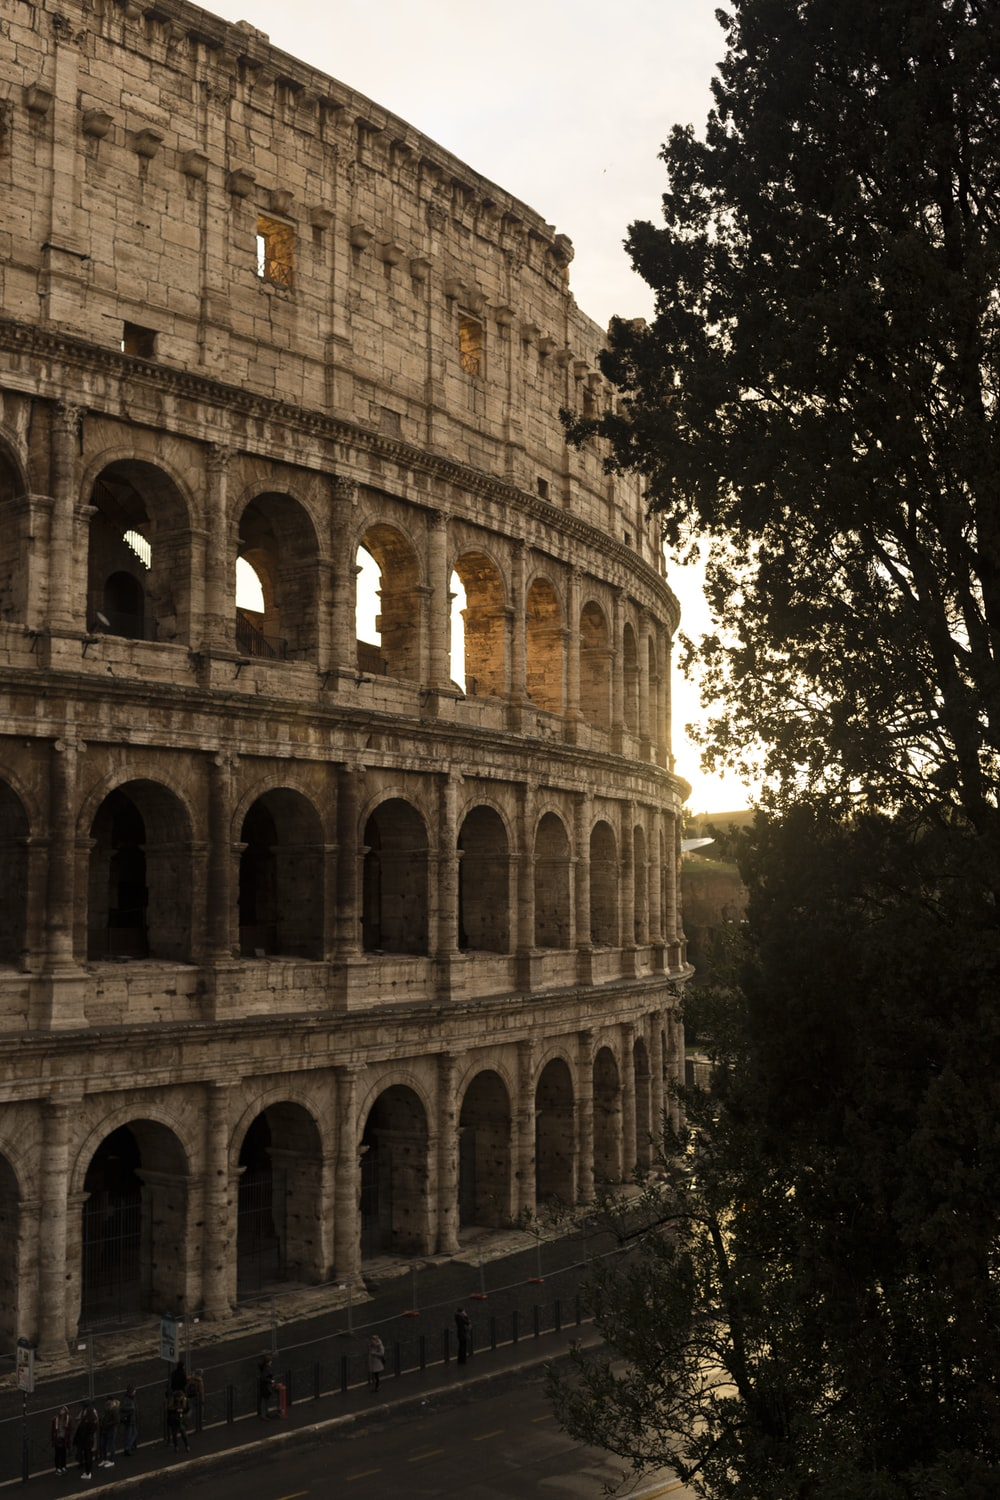 Colosseum photography